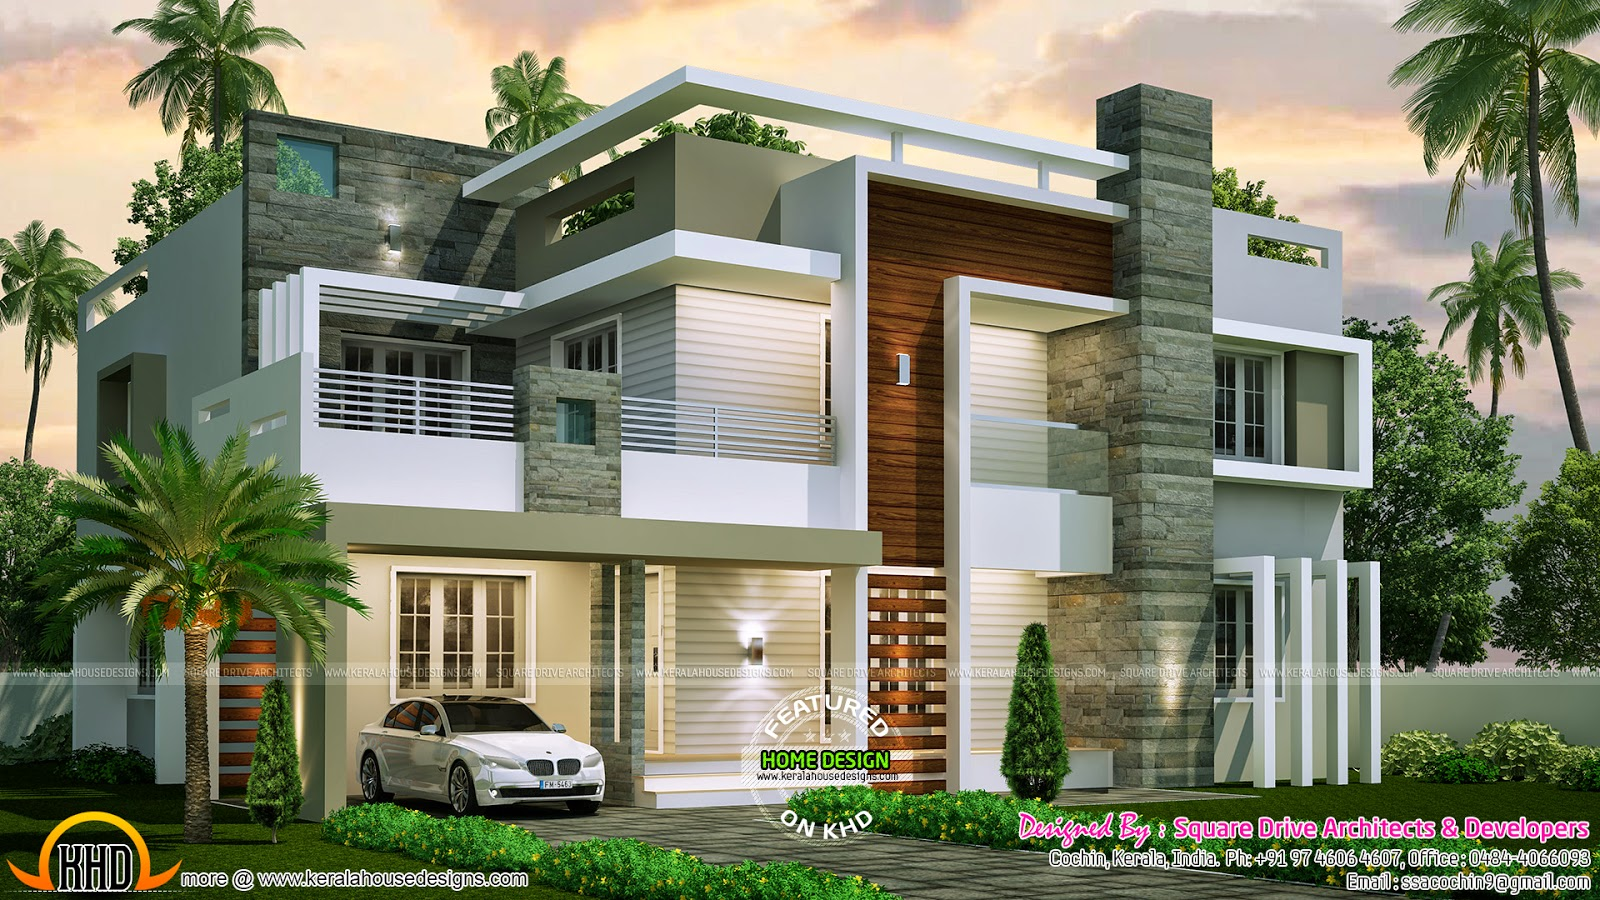 4 bedroom contemporary home design kerala home design for Best modern house design 2017